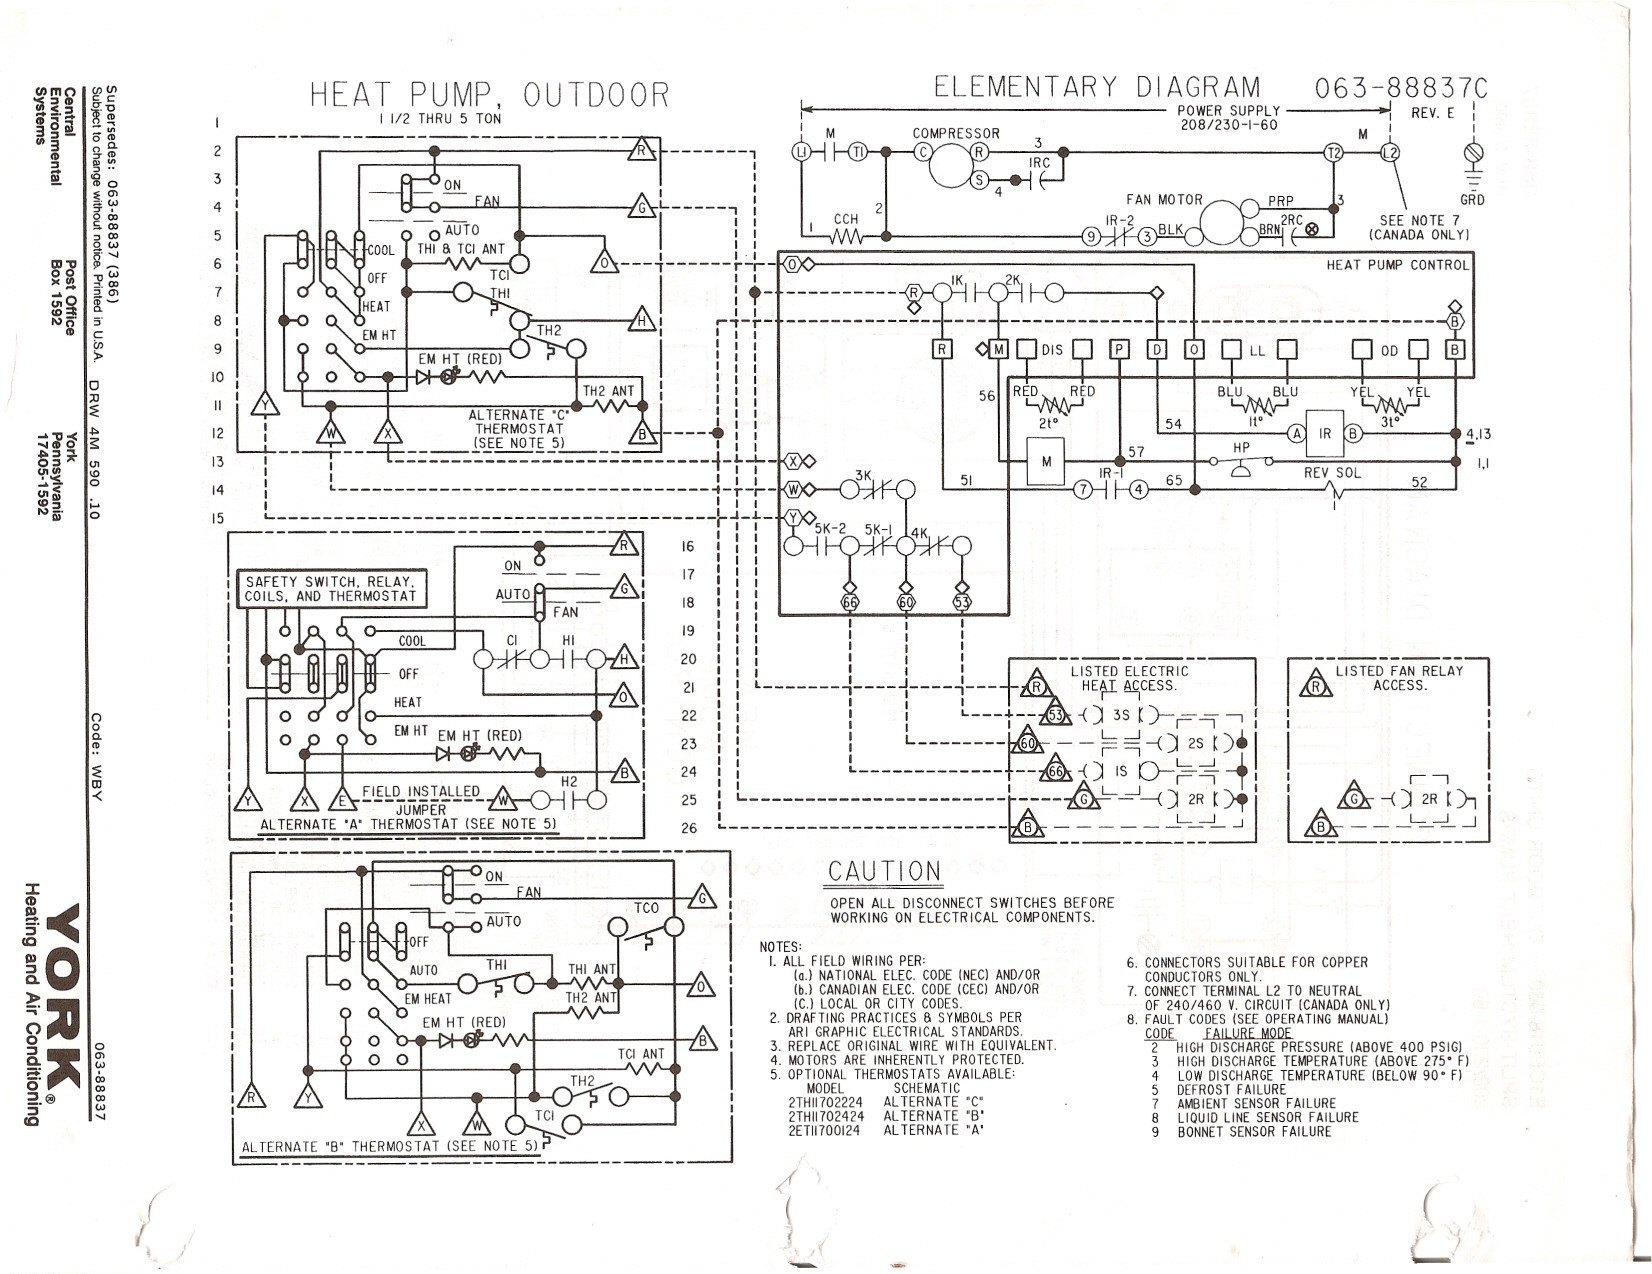 band heater wiring diagram Collection-electric heat strip wiring diagram Download Goodman Heat Pump Thermostat Wiring Diagram New Generous York DOWNLOAD Wiring Diagram 11-e